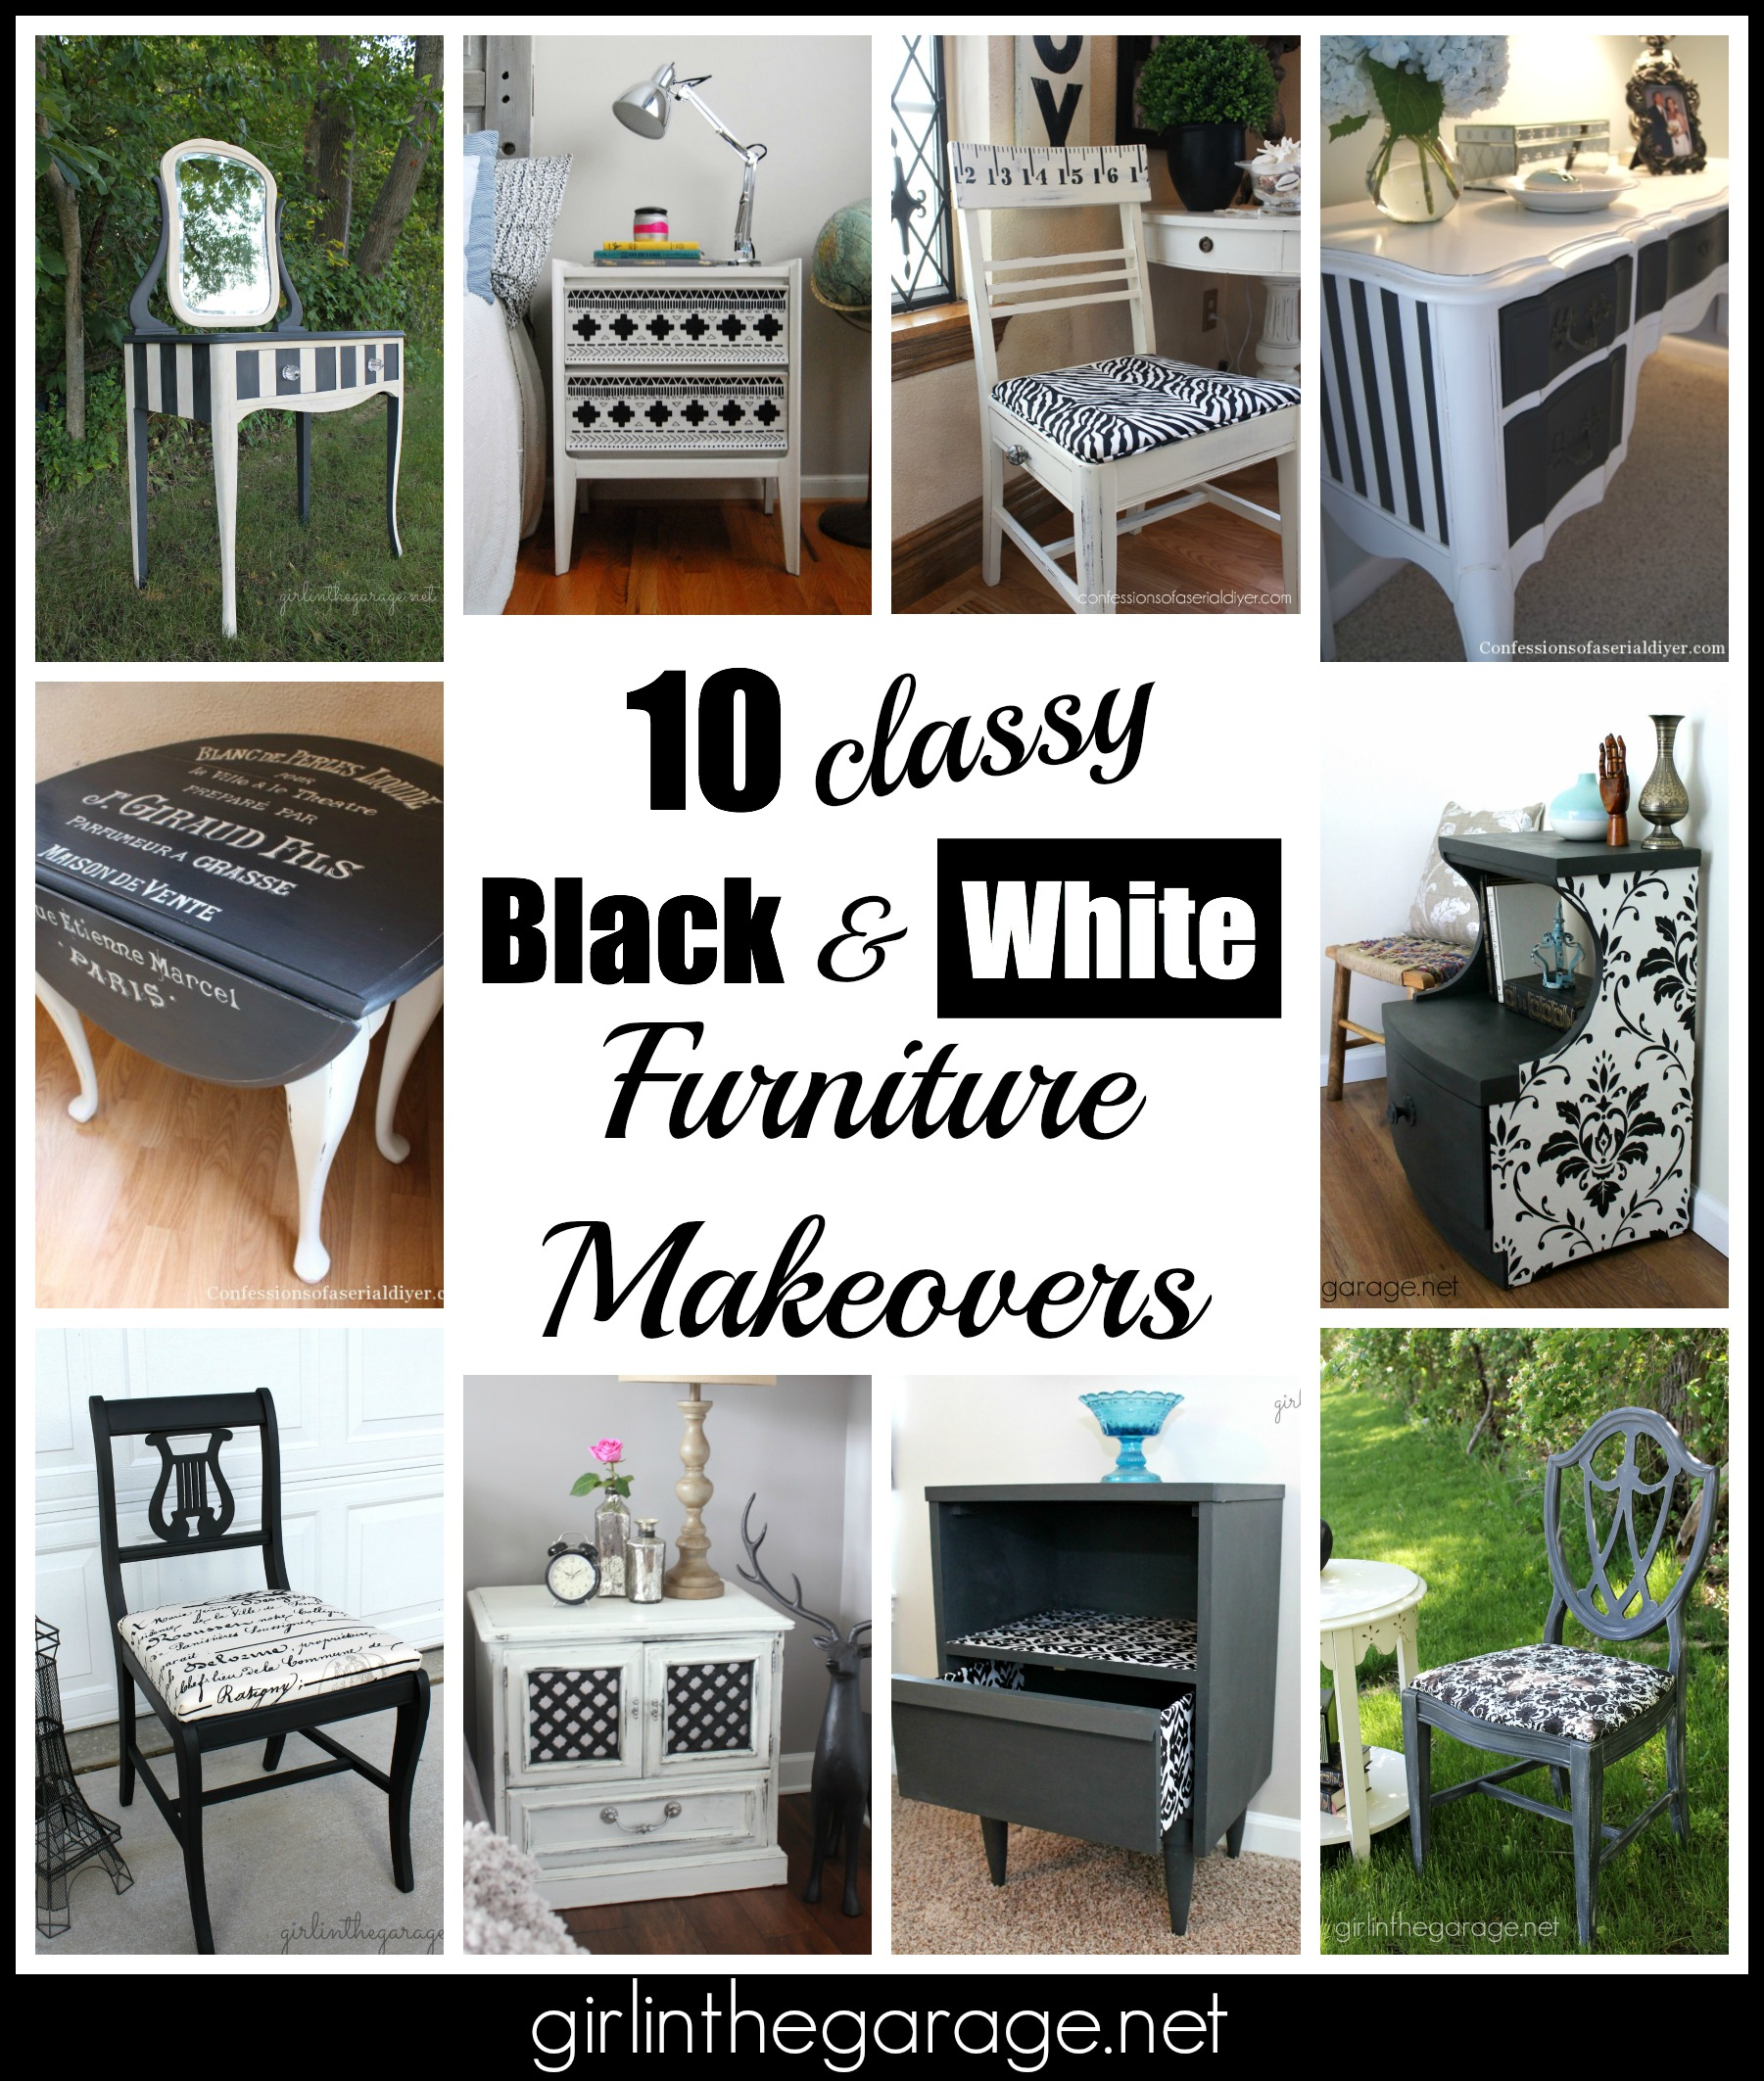 black n white furniture. 10 classy black and white furniture makeovers from talented diy bloggers compiled by girl in n